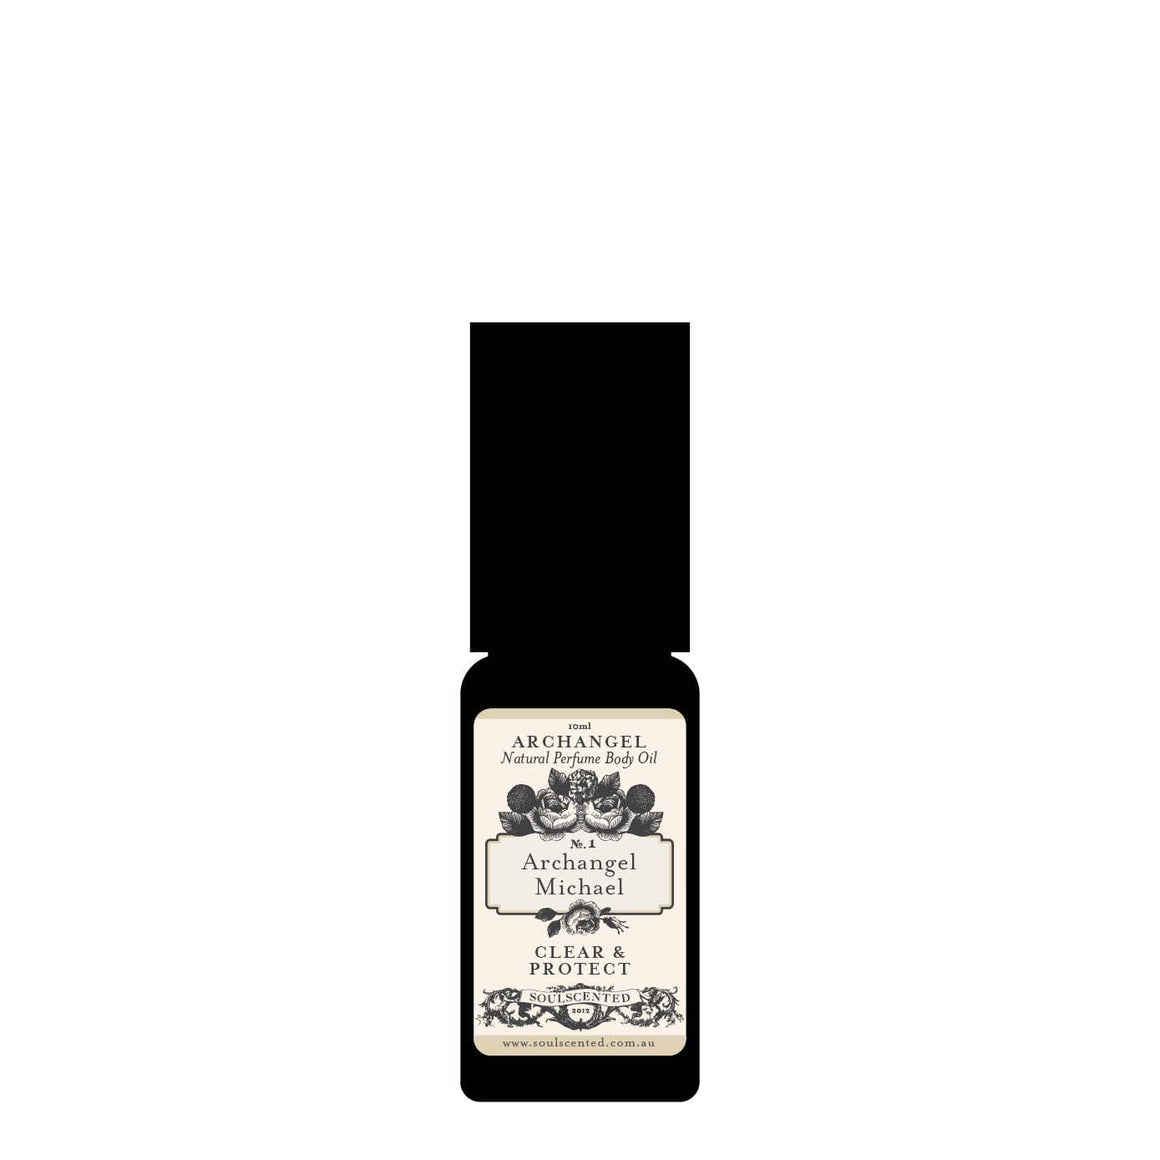 Soulscented-Apothecary, Day Spa, Salon, Perfumery & College Roll On Natural Perfume Body Oil 10ml Clear & Protect Roll On Natural Perfume Body Oil 10ml